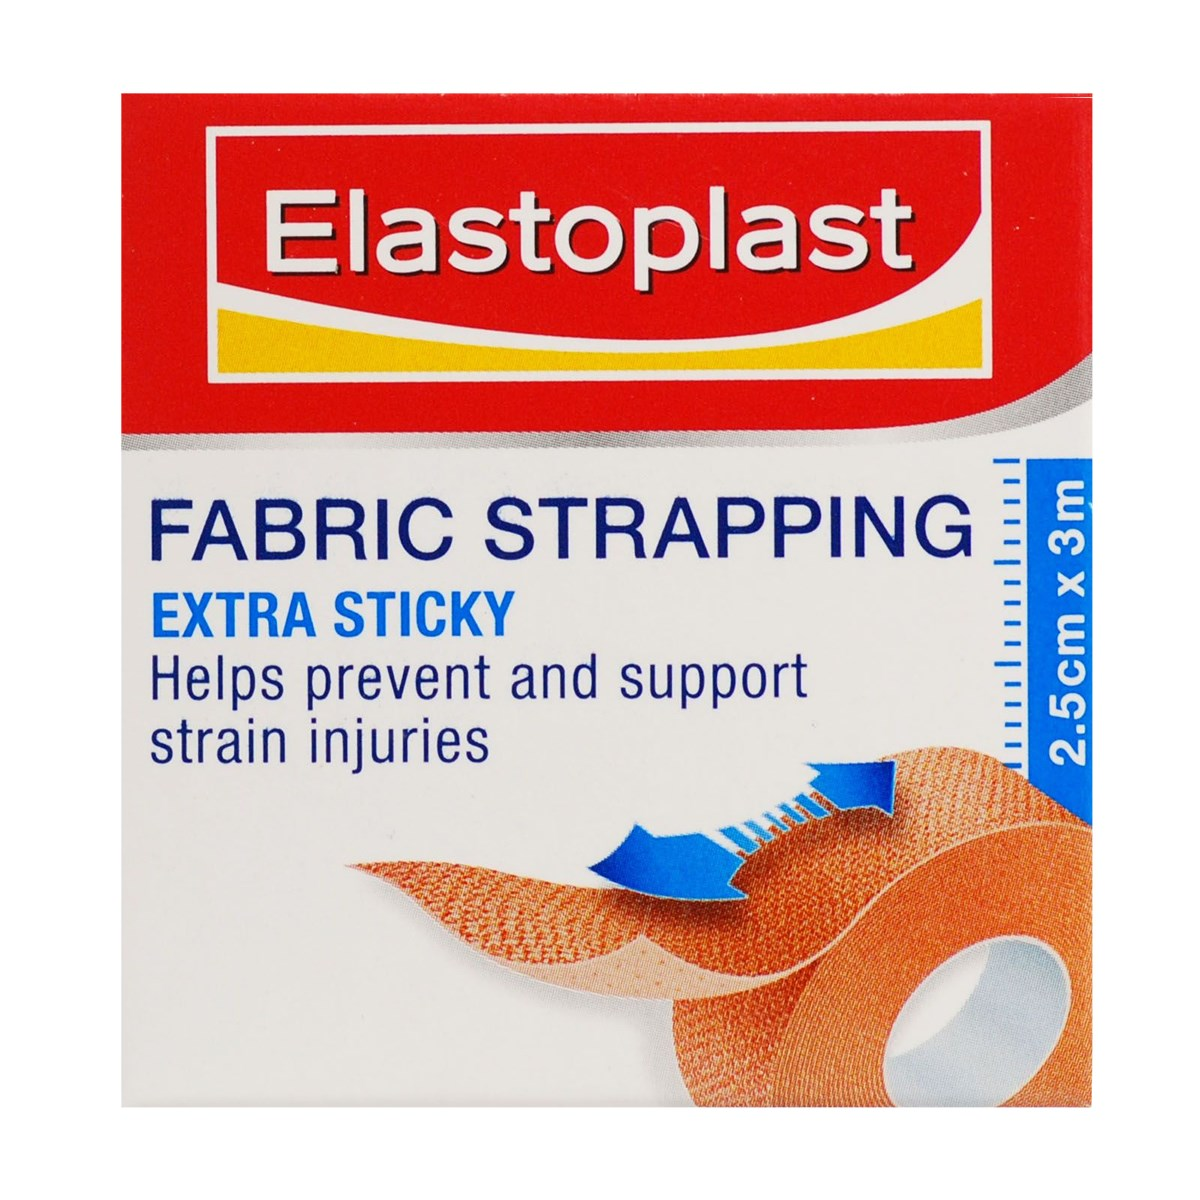 Elastoplast Fabric Strapping